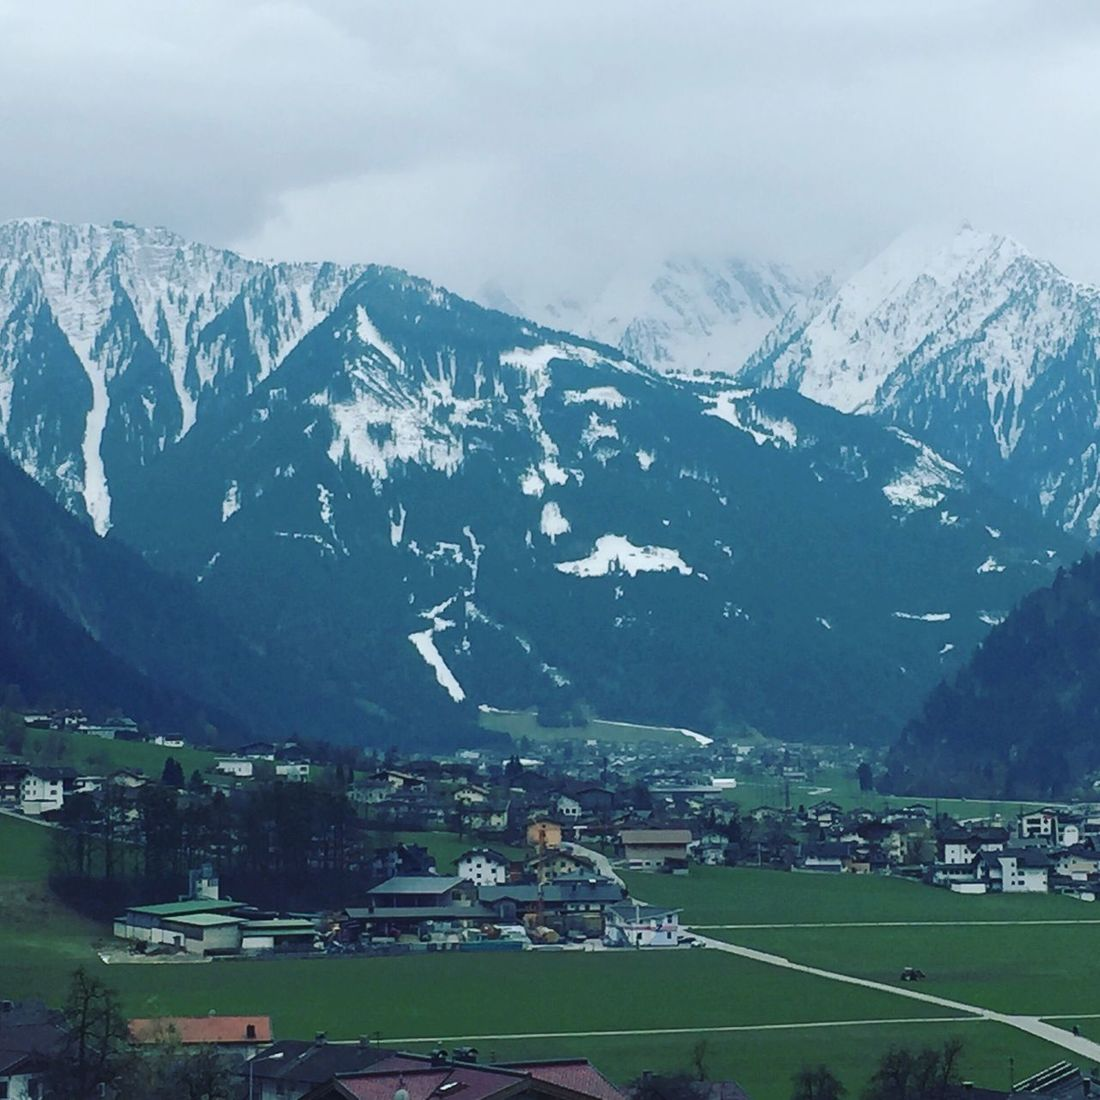 Mountains Landscape Idyllic Idyllic Scenery Day Outdoor Holiday And Relaxing Tranquility Hippach Mayrhofen Ramsau  Austria The Great Outdoors - 2016 EyeEm Awards